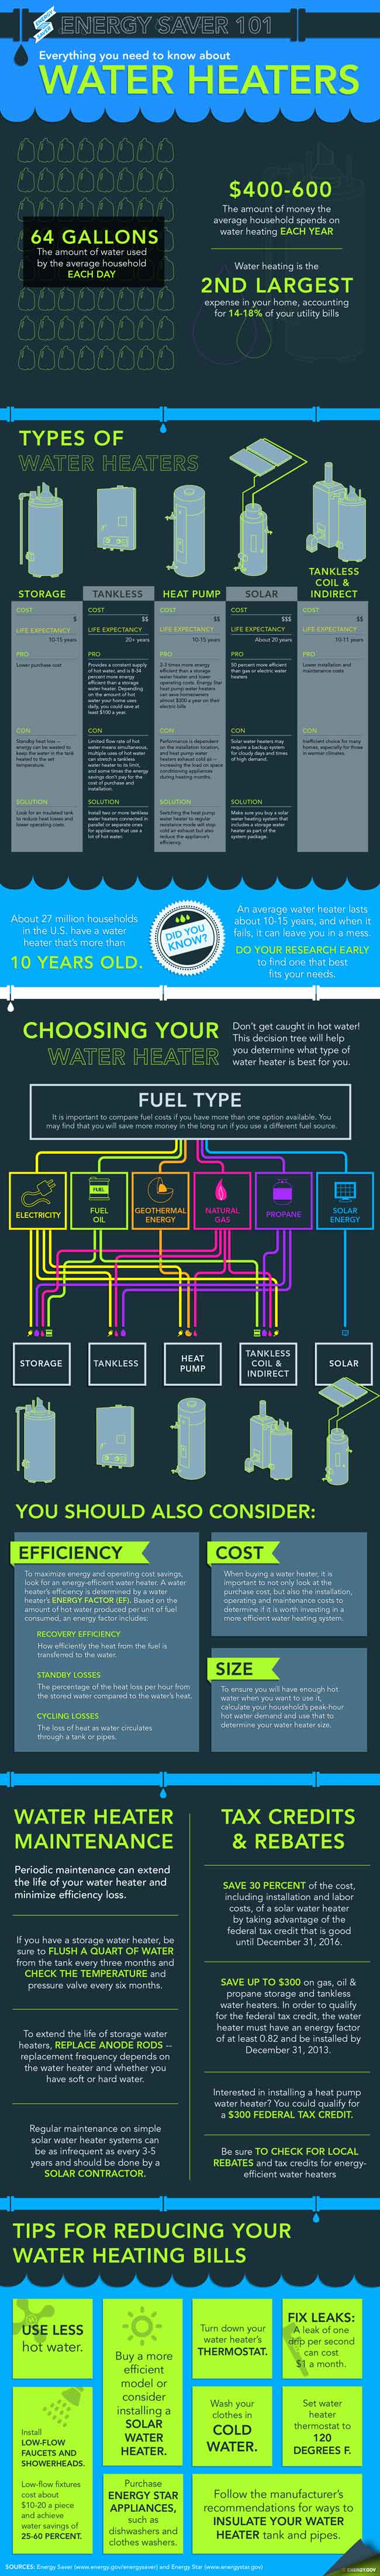 hot water heaters as infographic